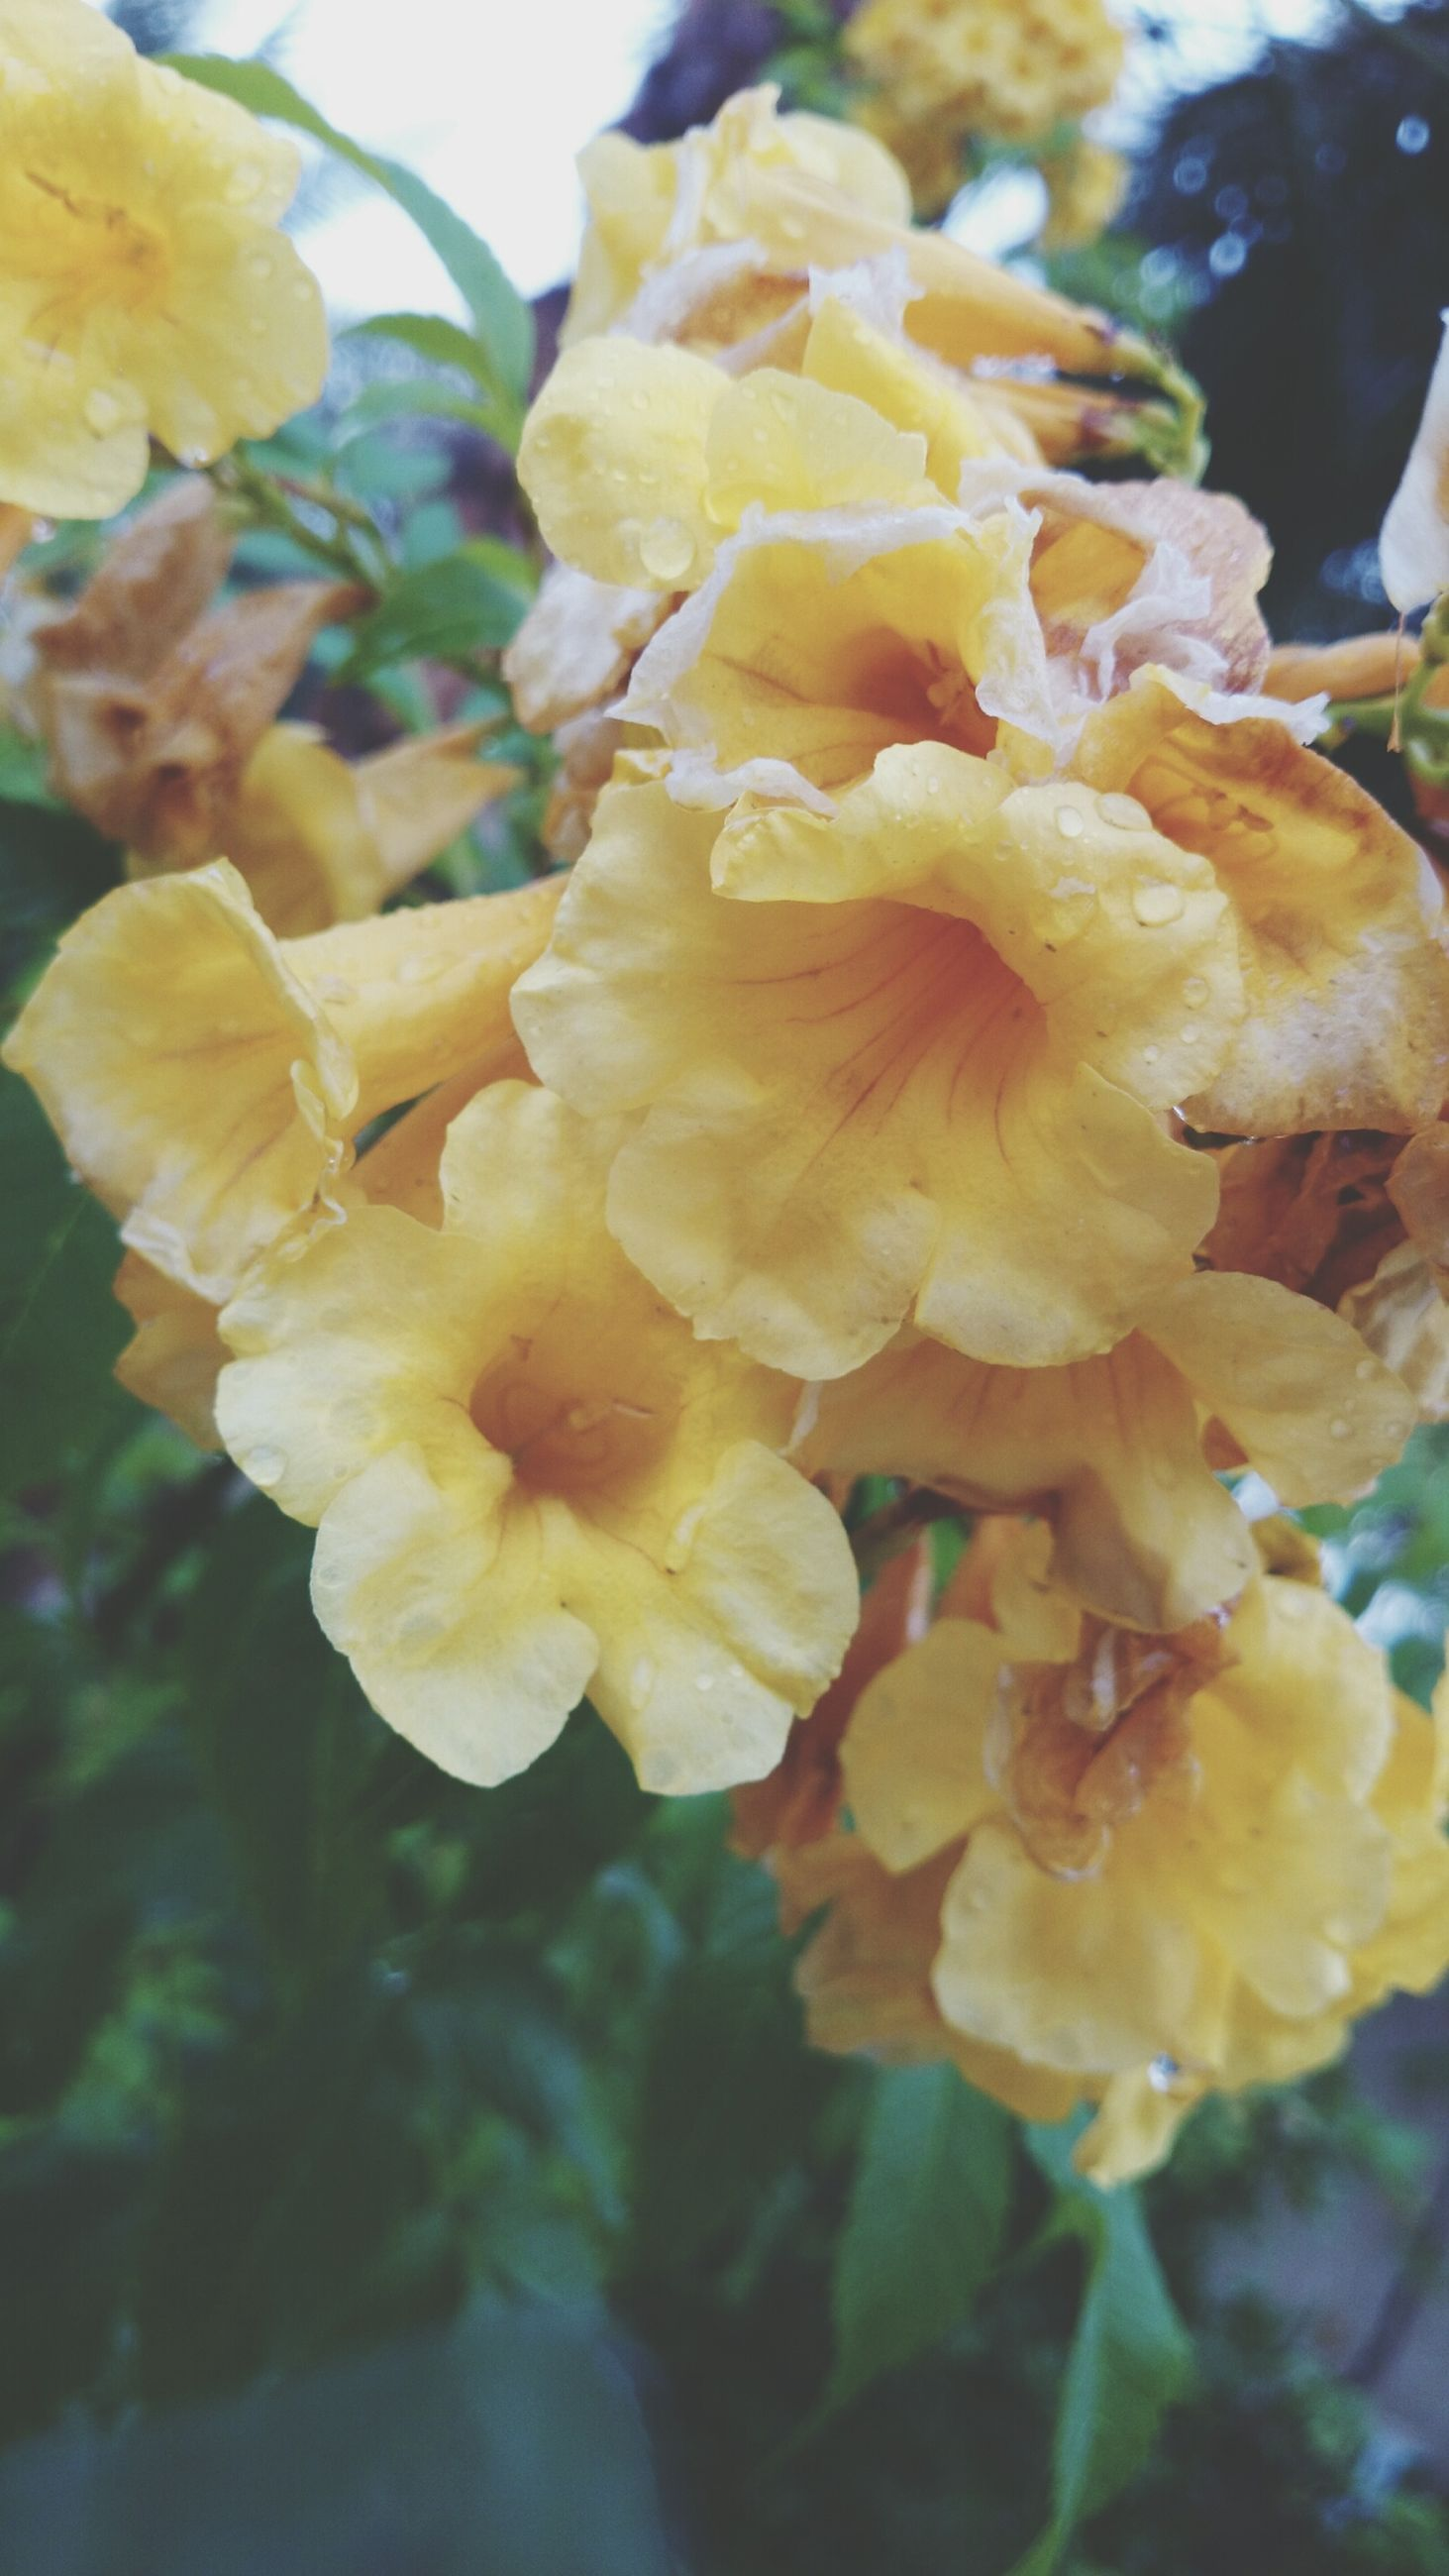 flower, petal, freshness, fragility, flower head, beauty in nature, growth, yellow, close-up, blooming, focus on foreground, nature, plant, in bloom, blossom, day, no people, botany, outdoors, springtime